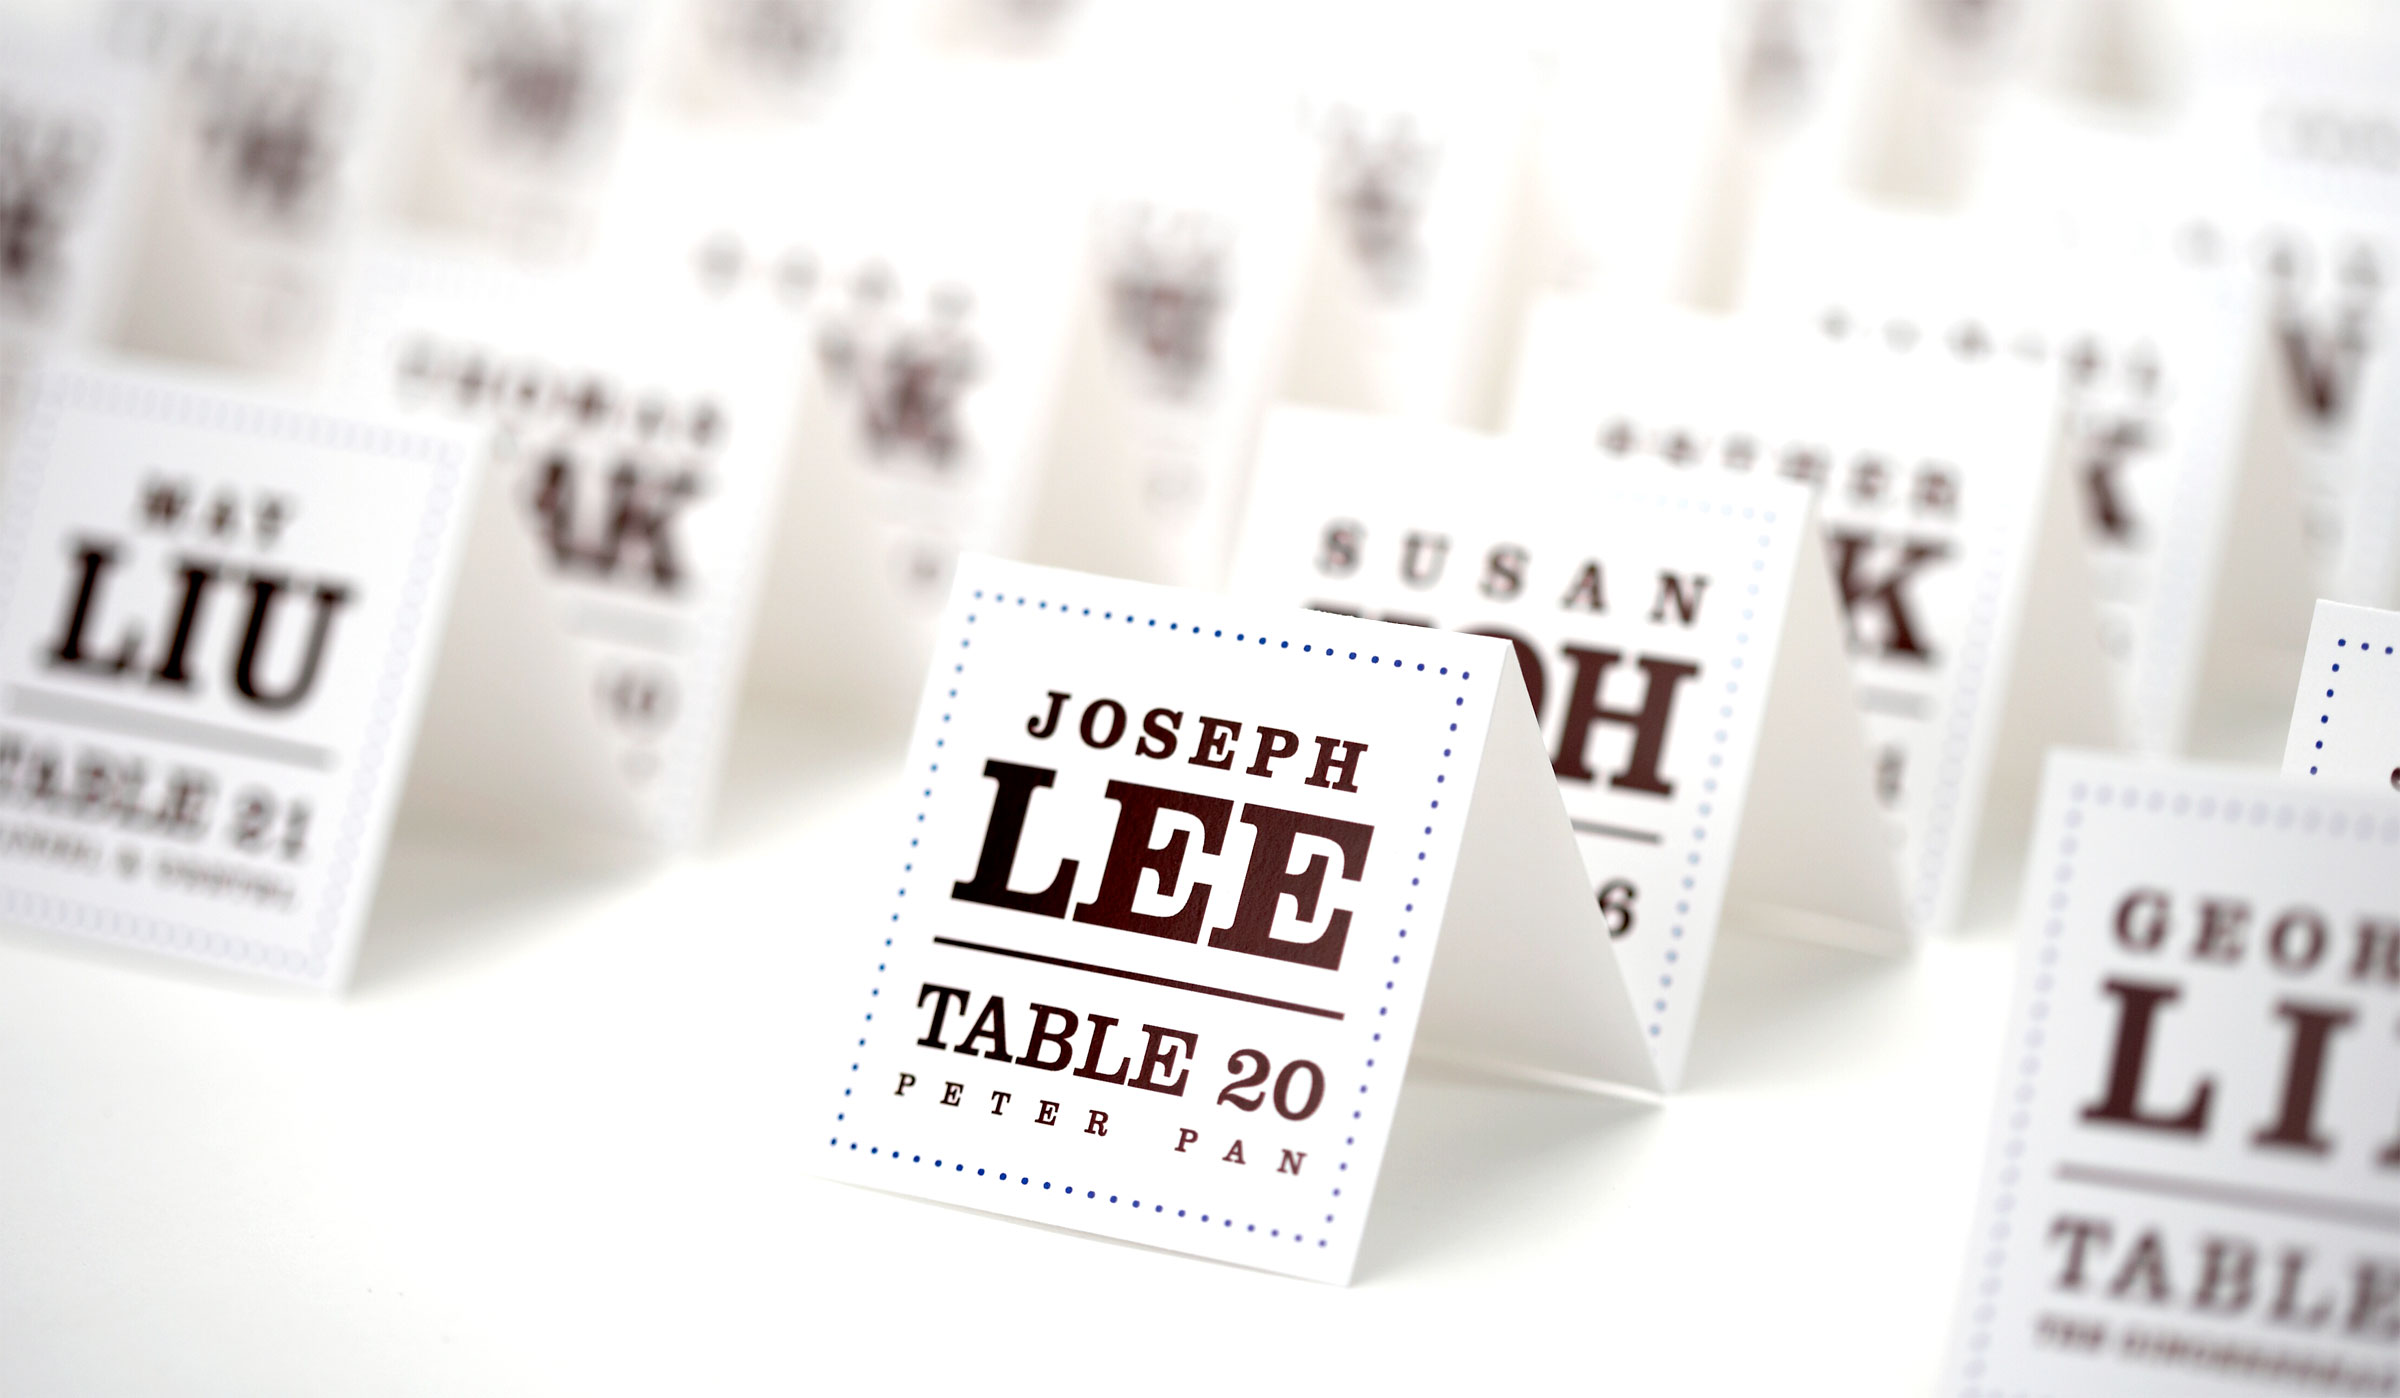 Table name tags for weddings images for Design table name cards